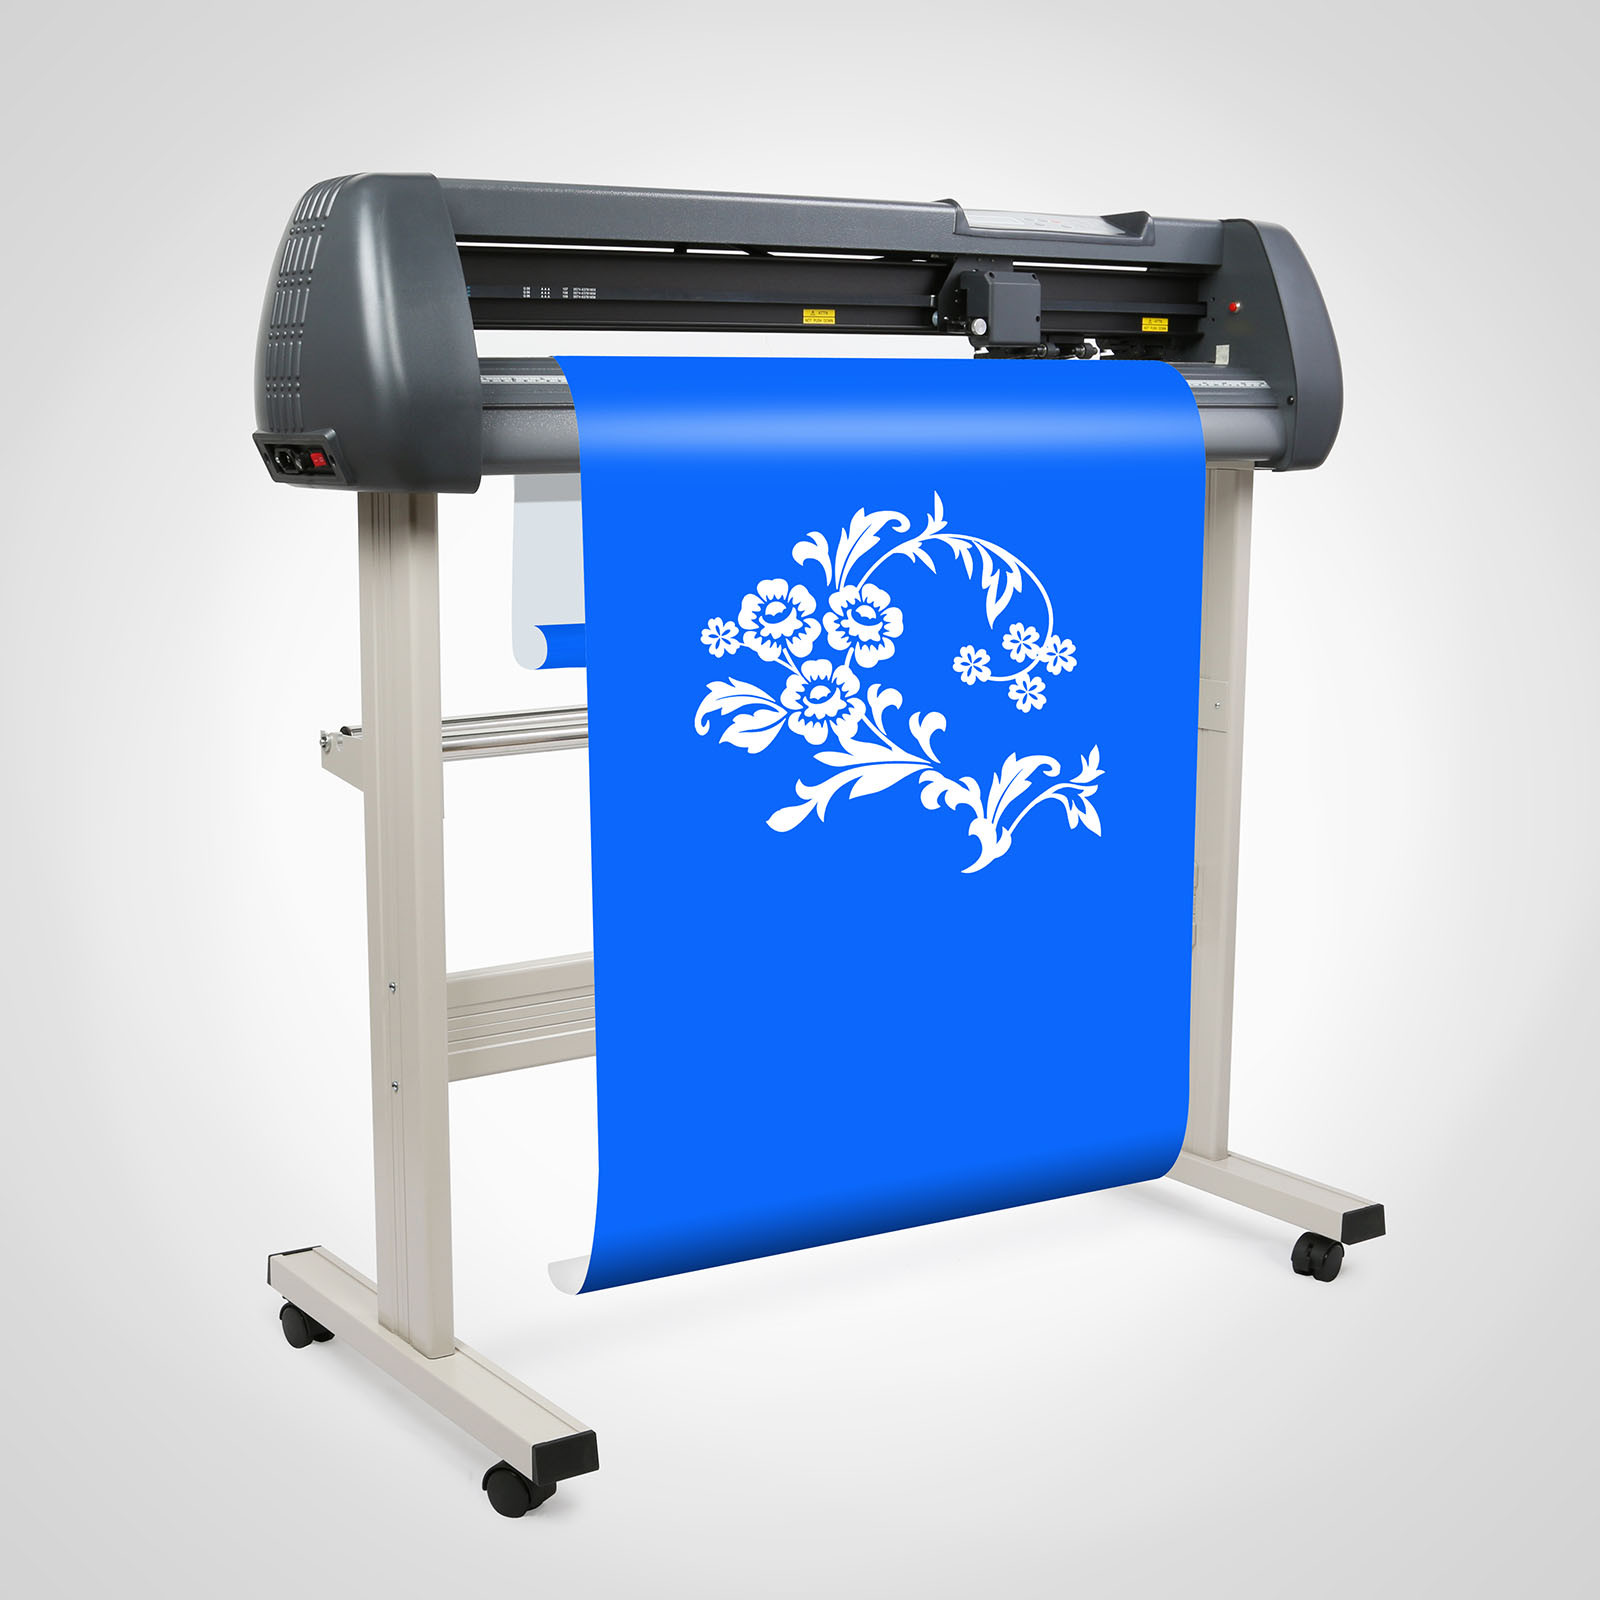 Vinyl Cutter 34 Inch Vinyl Cutter Machine 870mm Paper Feed Vinyl Plotters with Floor Stand